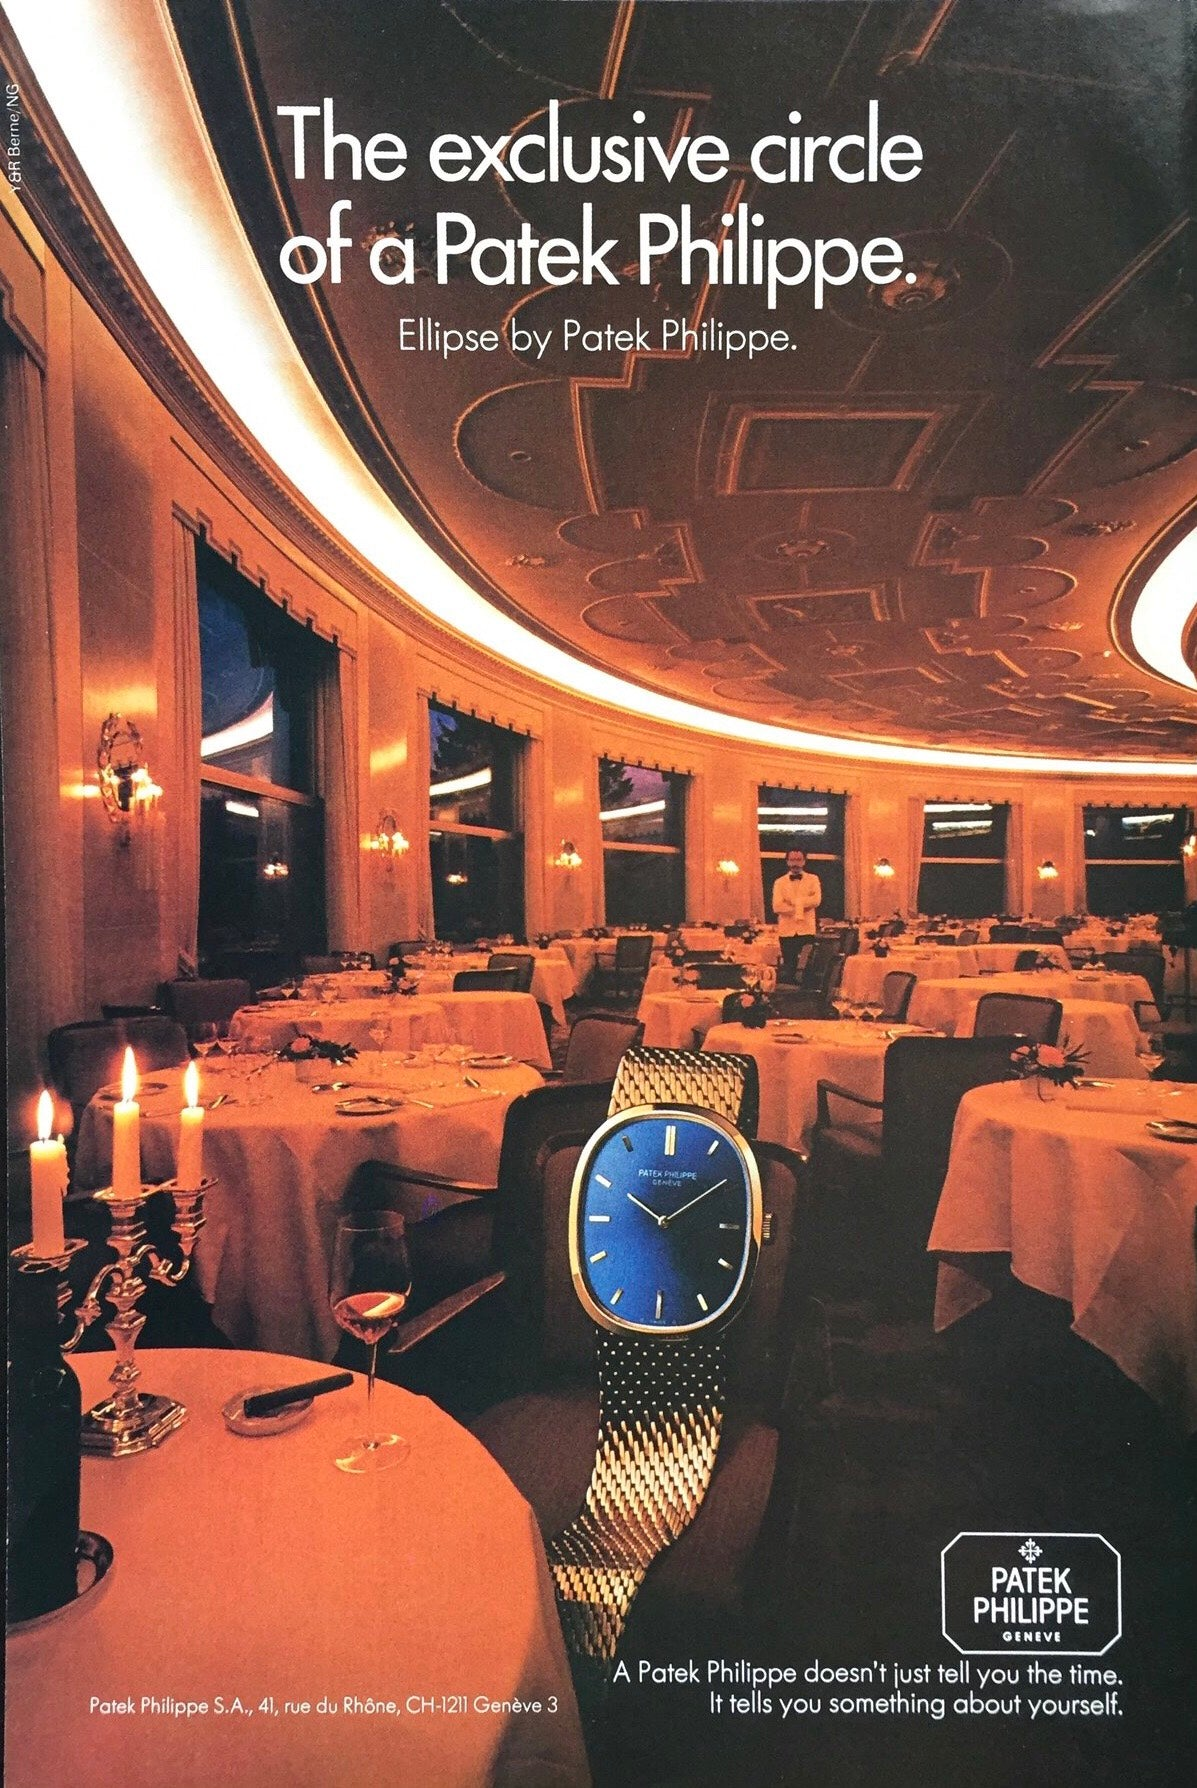 Patek Philippe Golden Ellipse in restaurant advertisement  In Why the Patek Philippe Golden Ellipse Should Matter Just as Much as the Nautilus for A Collected Man London